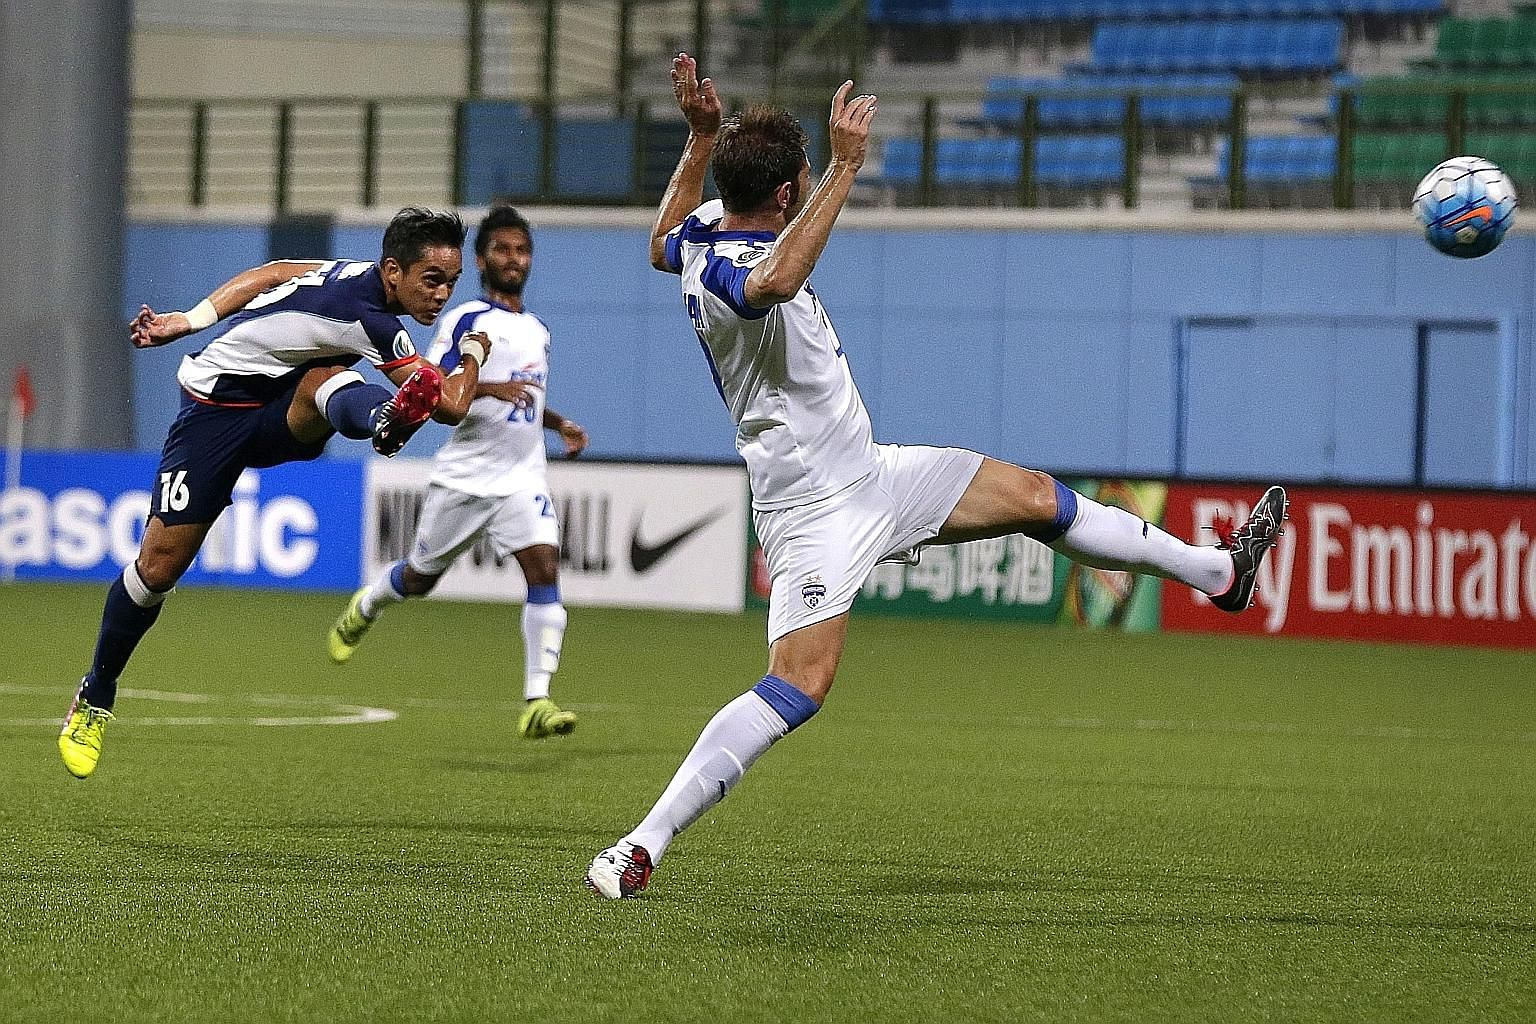 Tampines Rovers midfielder Hafiz Sujad shooting past Bengaluru FC's Juan Antonio during their AFC Cup stalemate. The Stags were knocked out after failing to score over two legs.